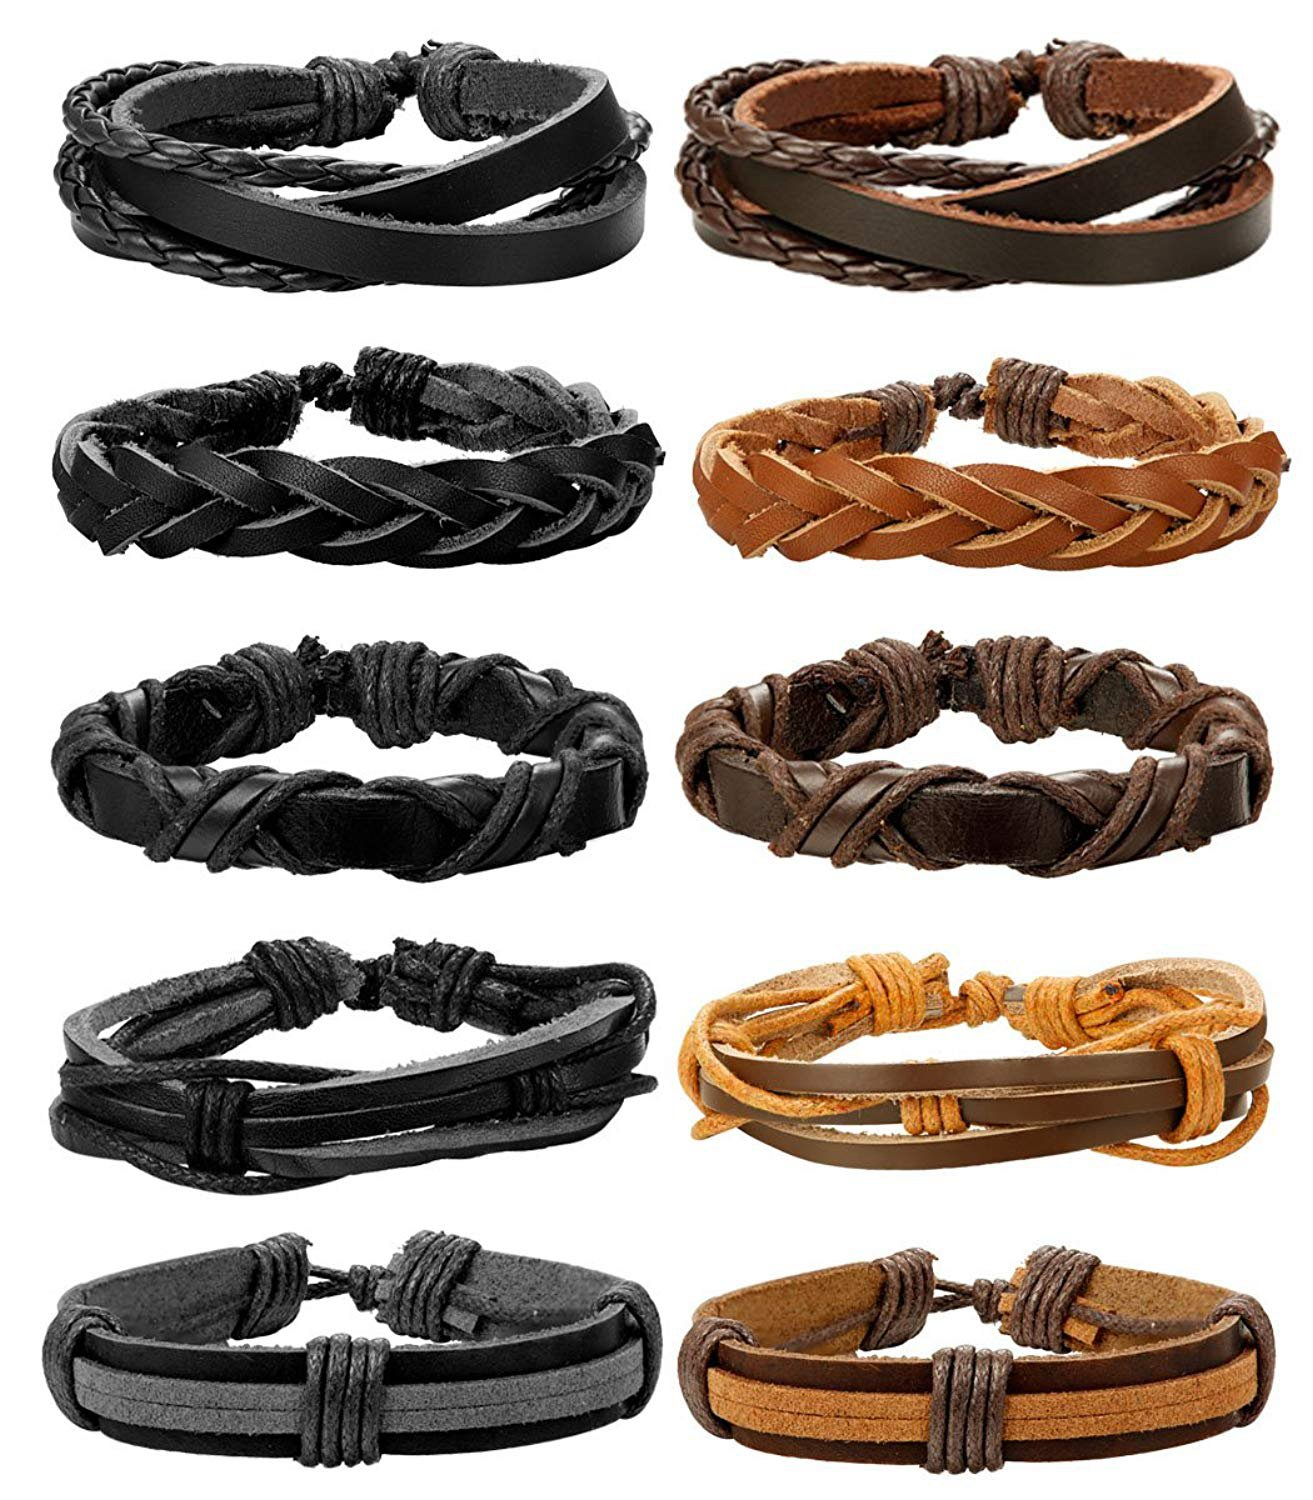 Besteel 10-12PCS Braided Leather Bracelets for Men Women Rope Bracelet Wrap Handmade, Adjustable B023-Q12